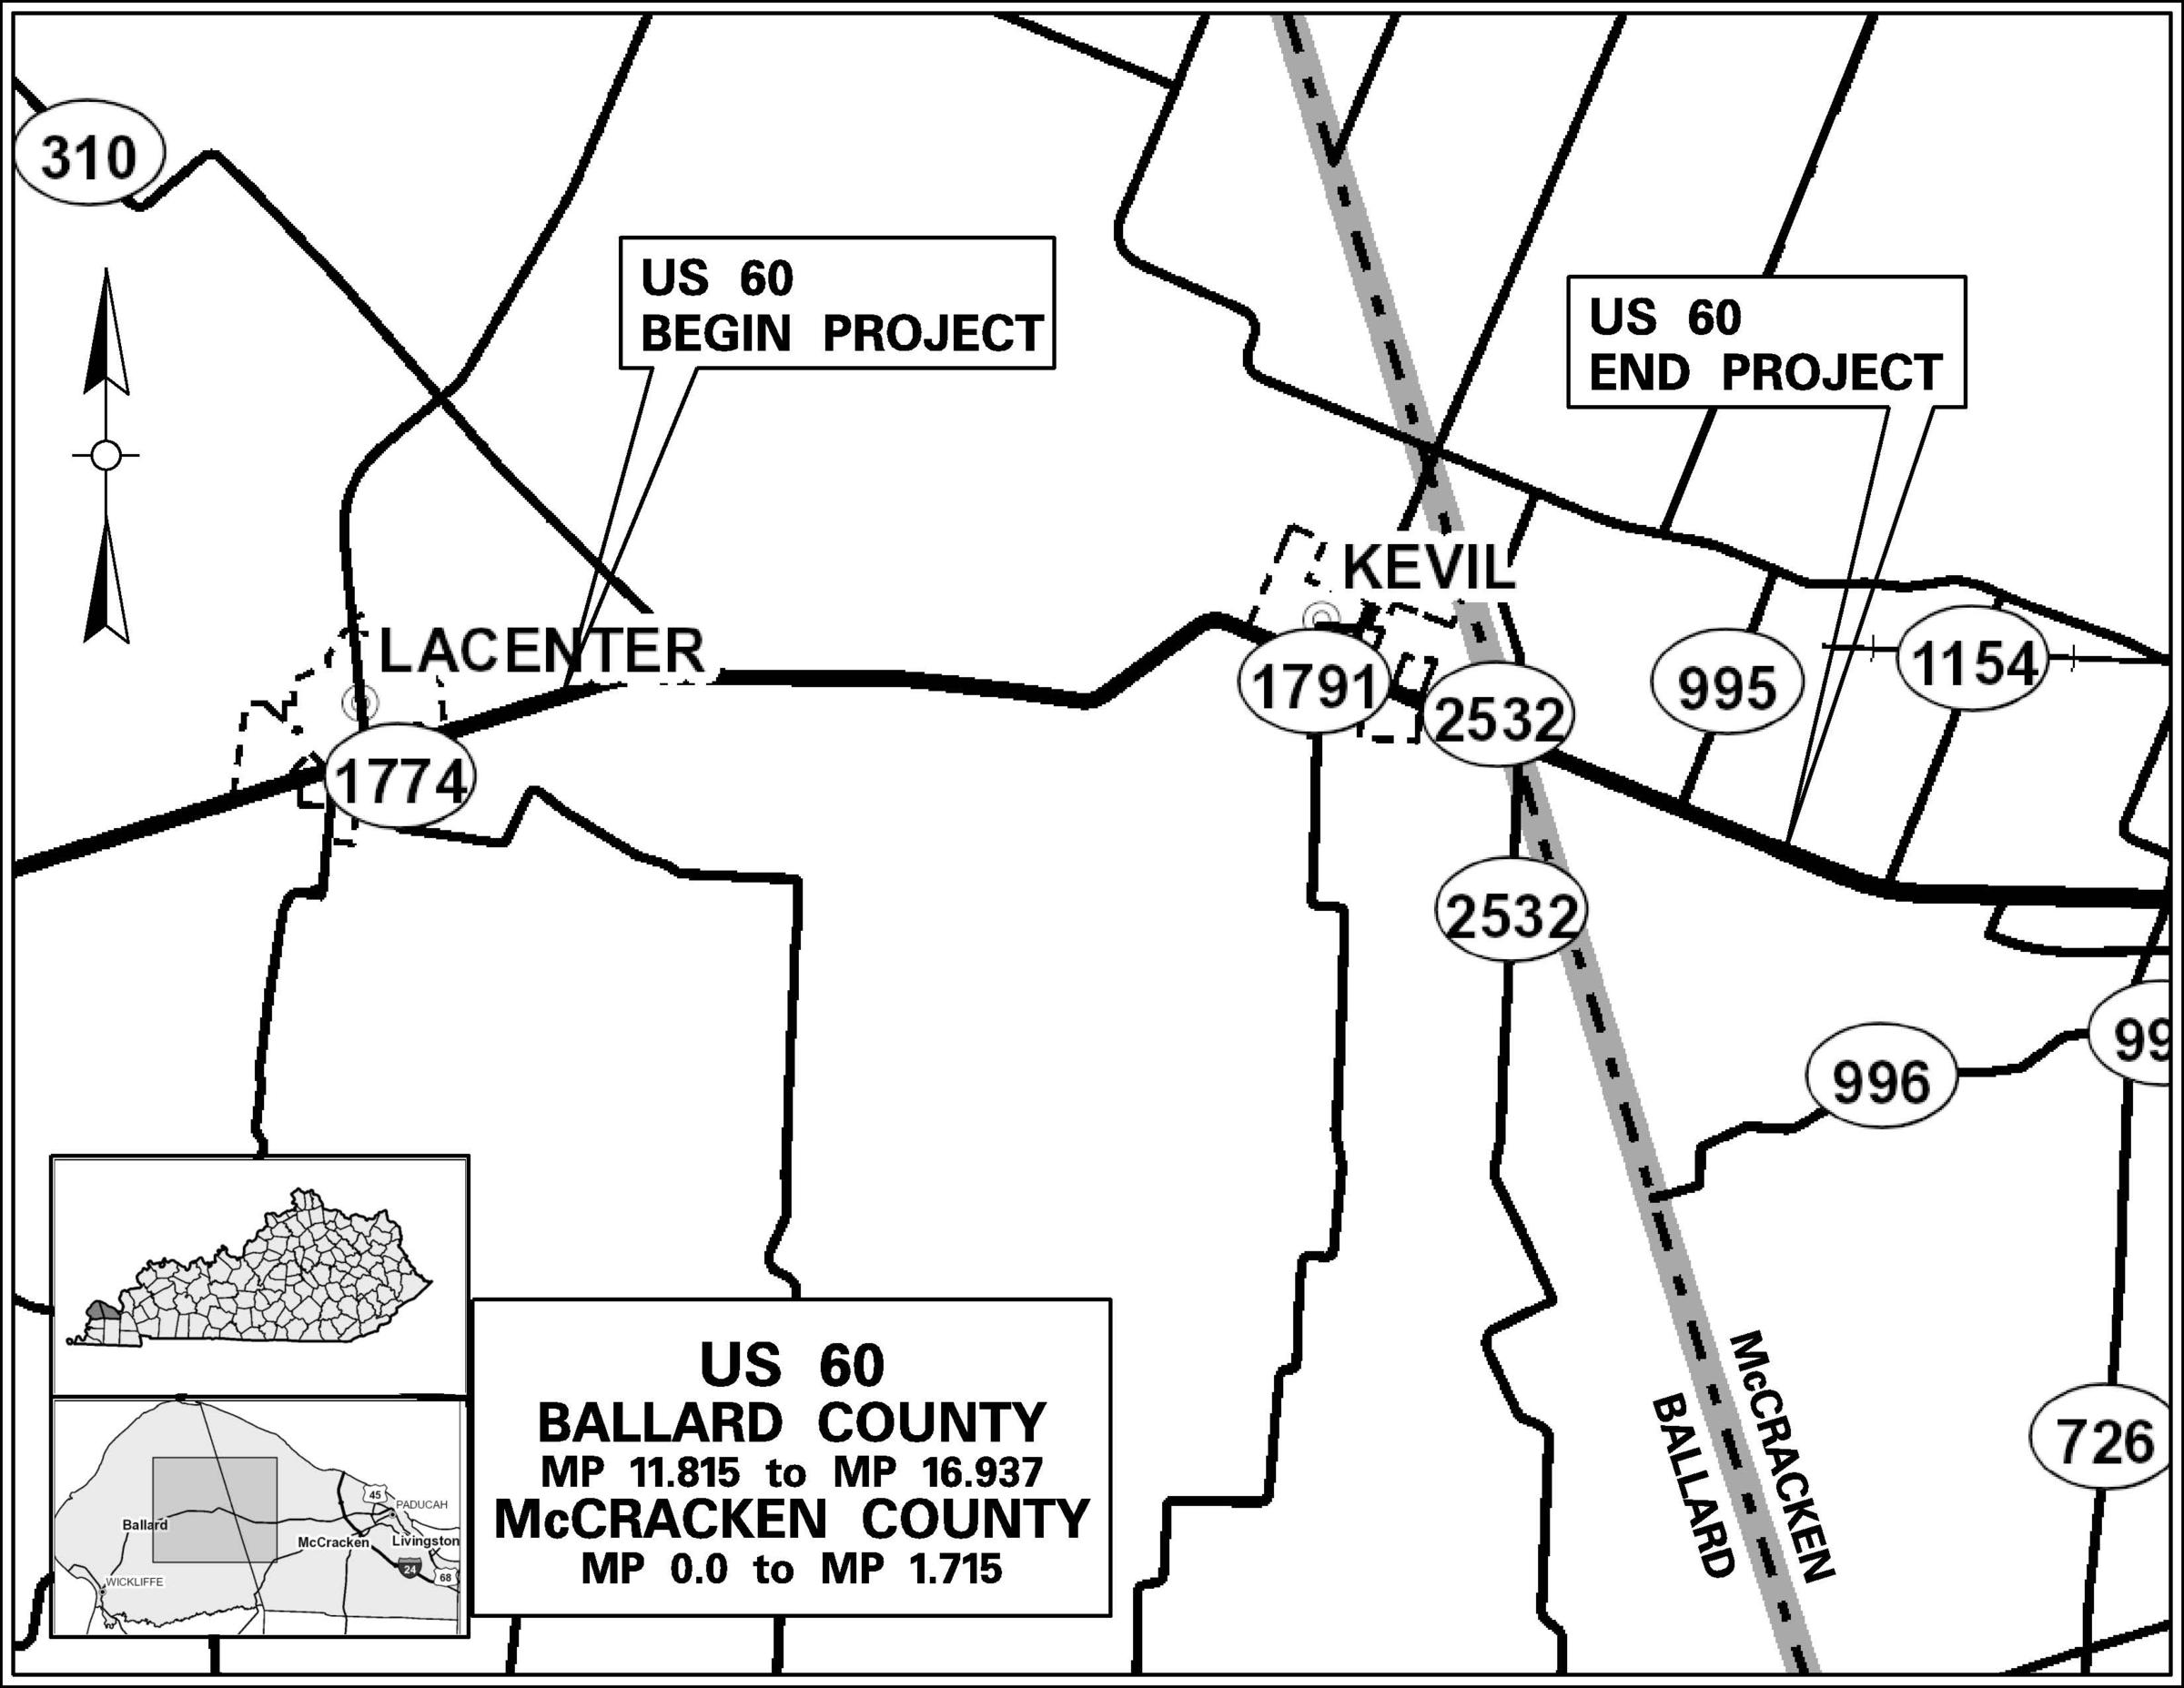 Kytc Maps on state of kansas highway patrol location maps, indiana department of natural resources maps, wyoming department of transportation maps, archived ohio road maps,